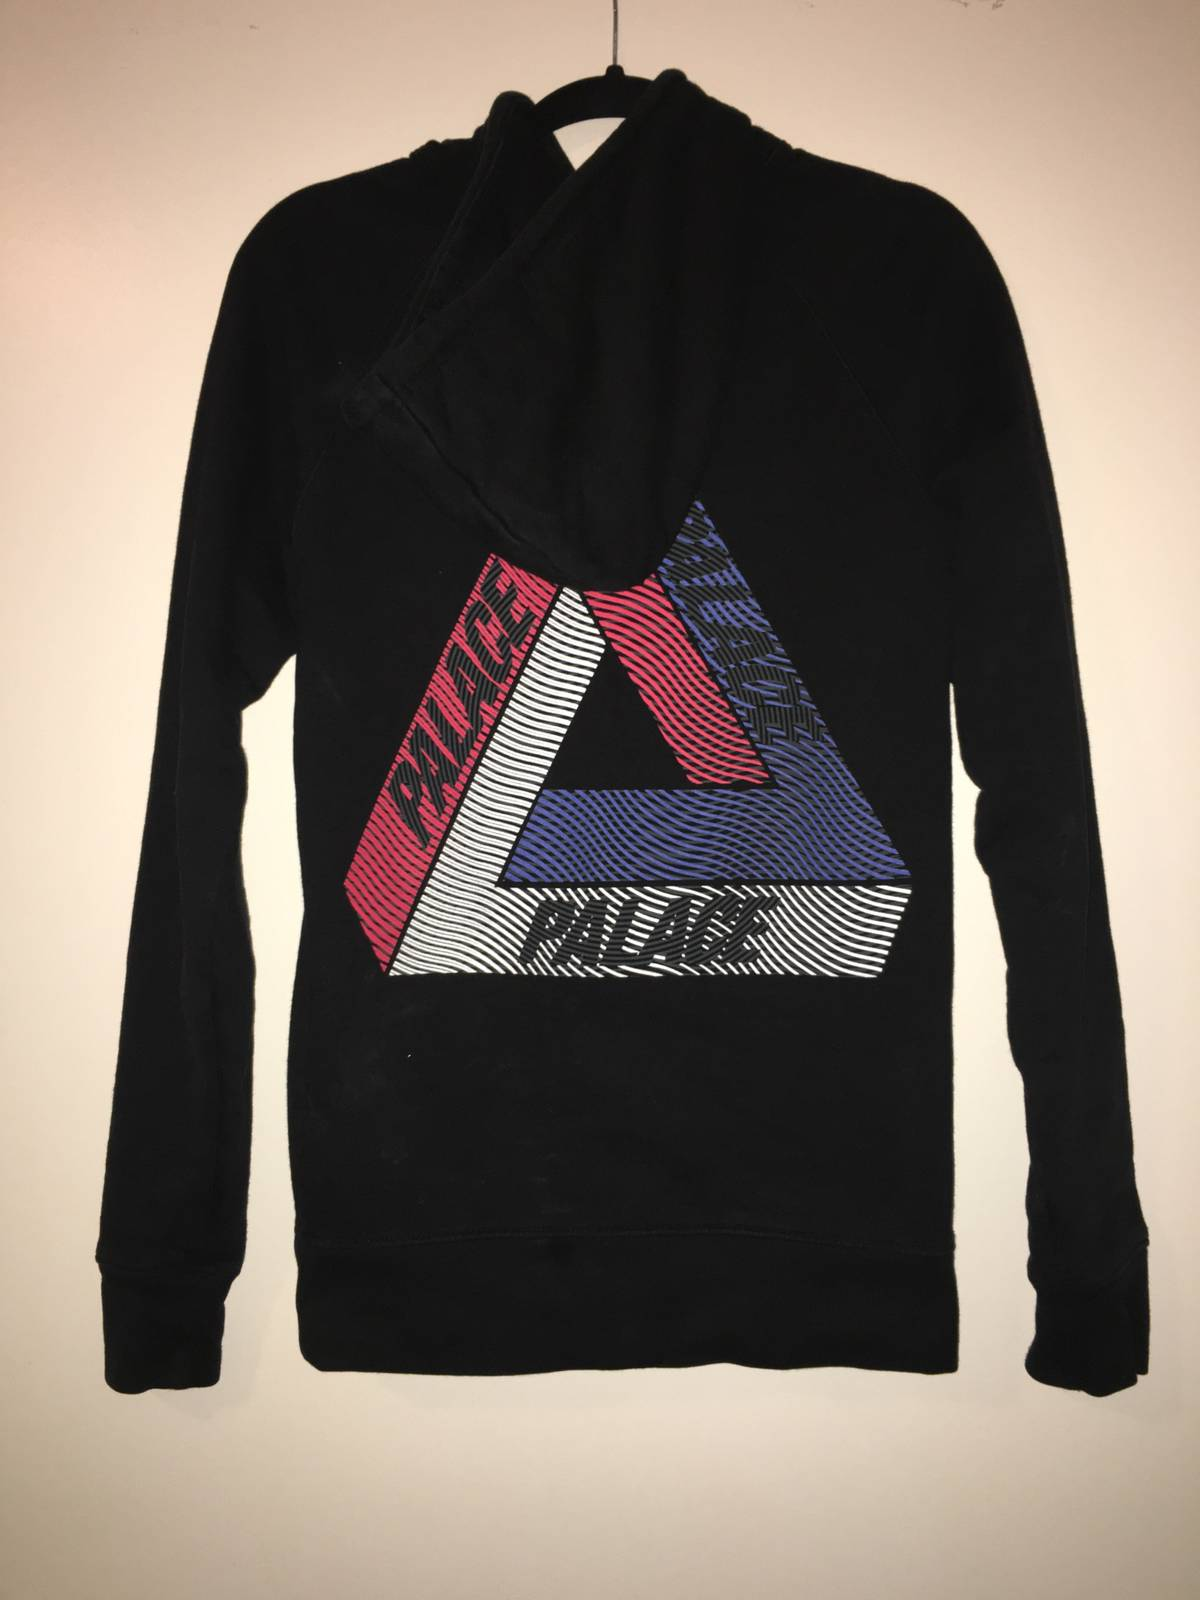 e3d71356a128 Palace Drury Brit Tri ferg hoodie Size s - Sweatshirts   Hoodies for Sale -  Grailed